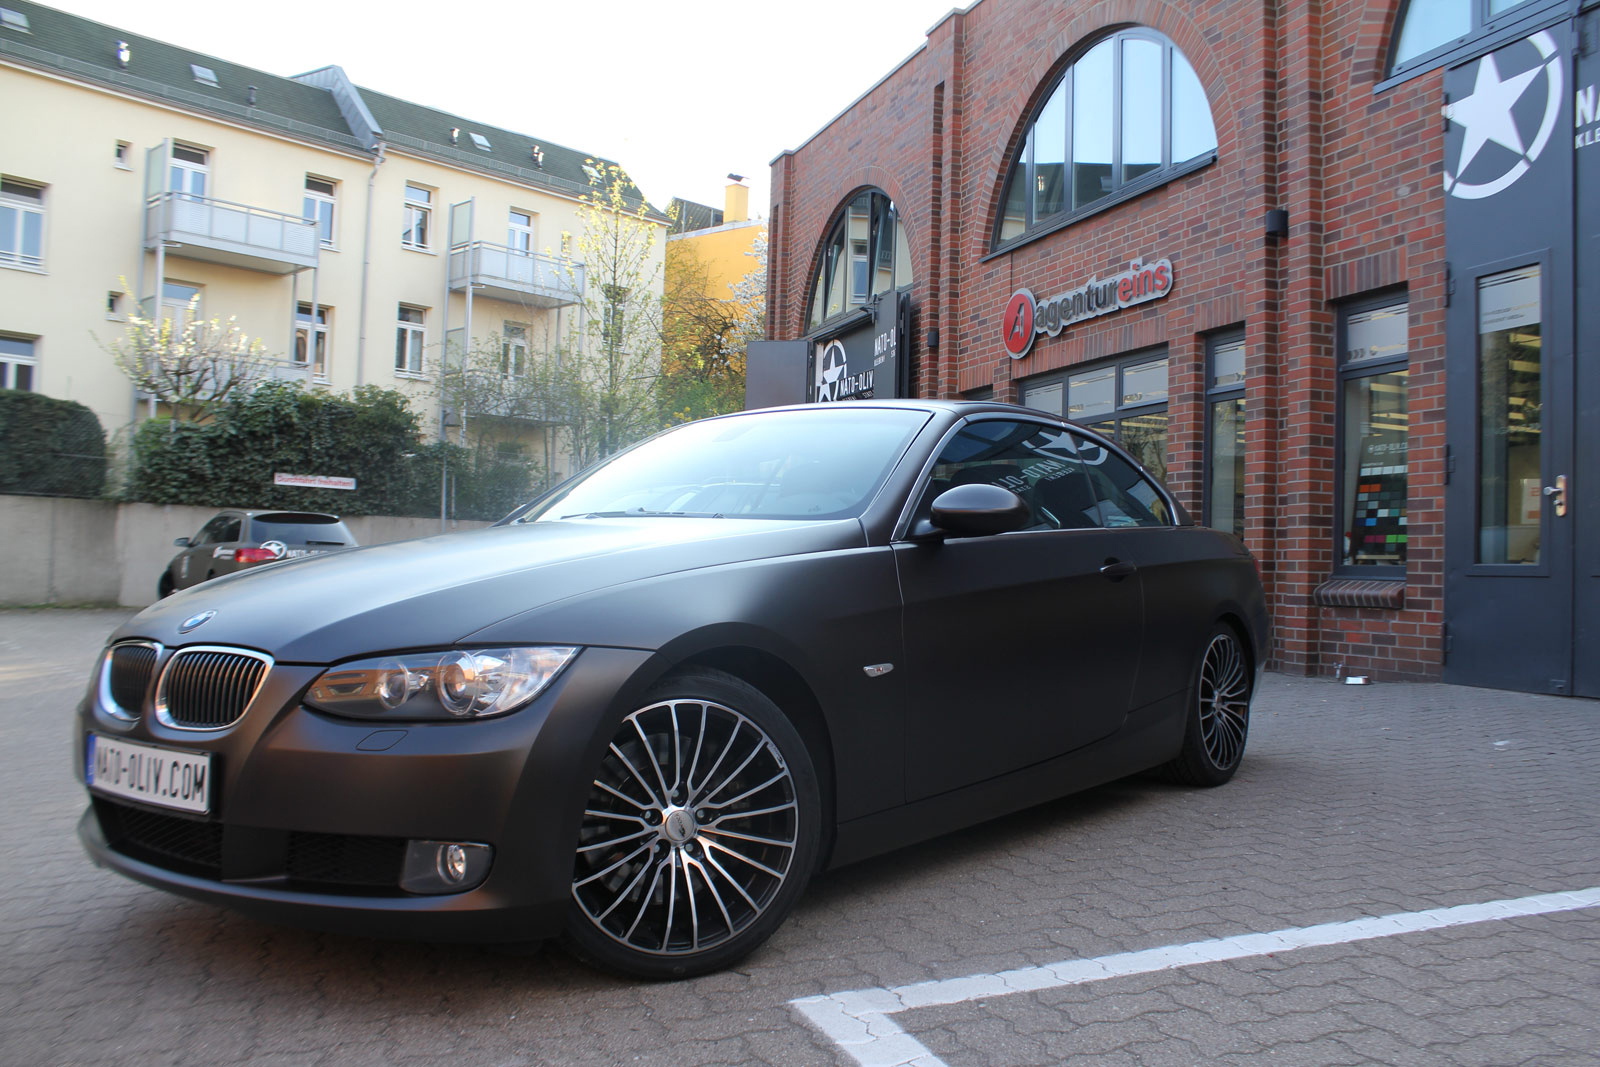 Car Wapping Auto Folierung BMW 3er Braun Matt Metallic